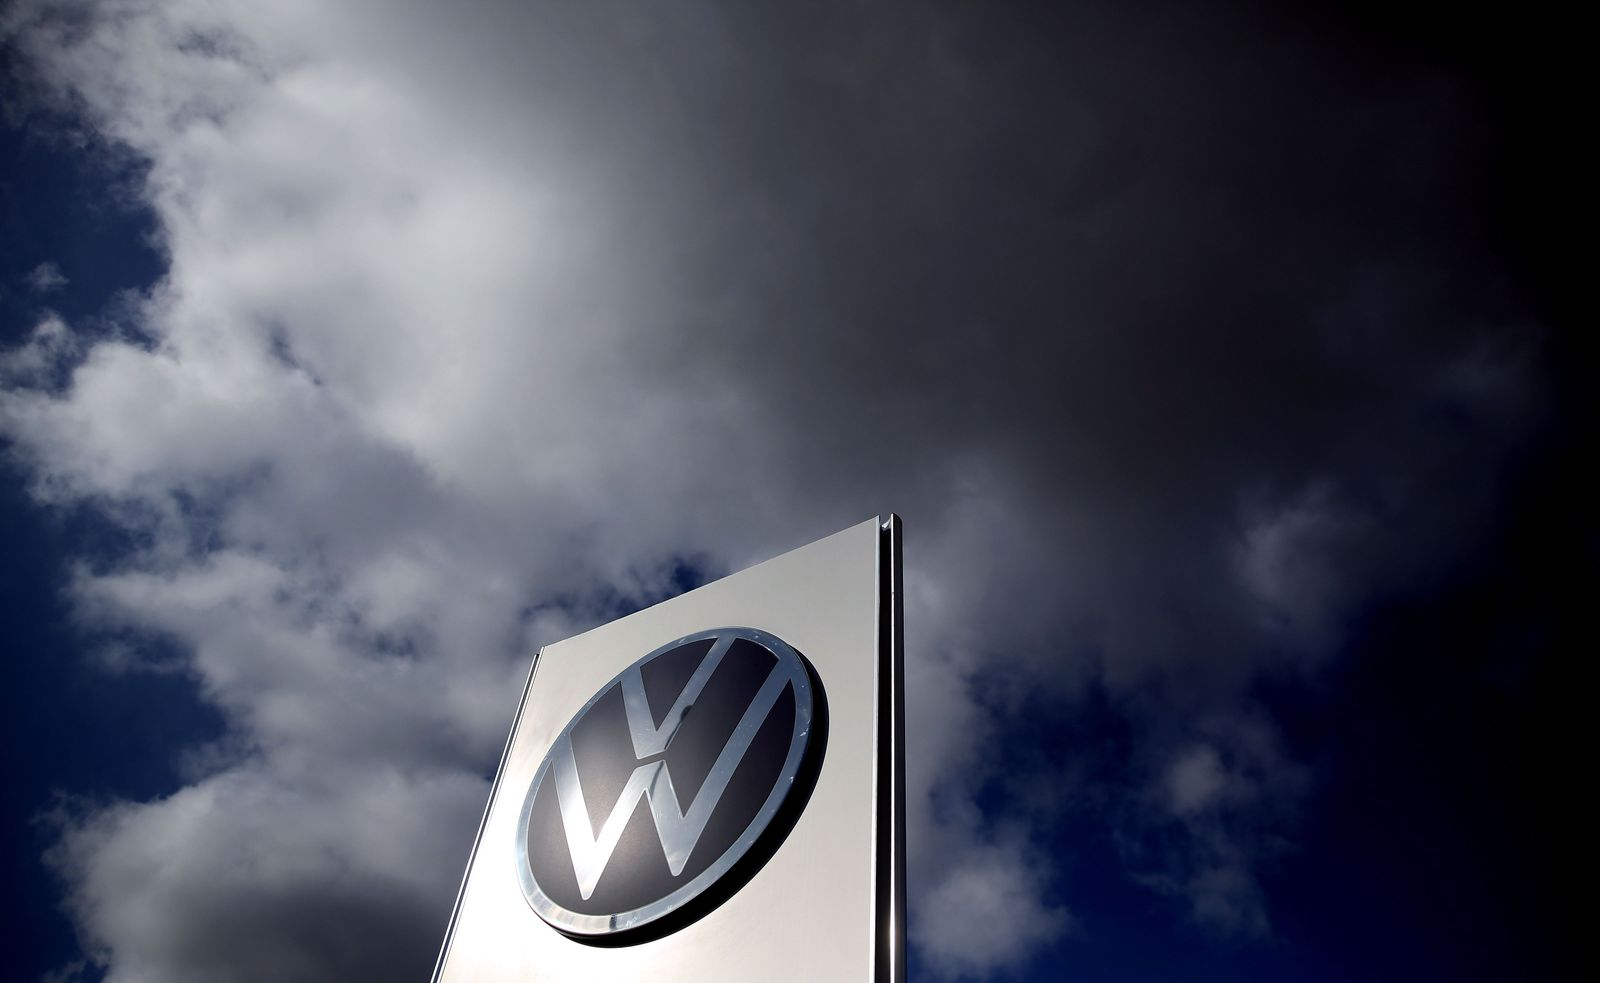 FILES-GERMANY-AUTOMOBILE-VOLKSWAGEN-DIESEL-COURT-POLLUTION